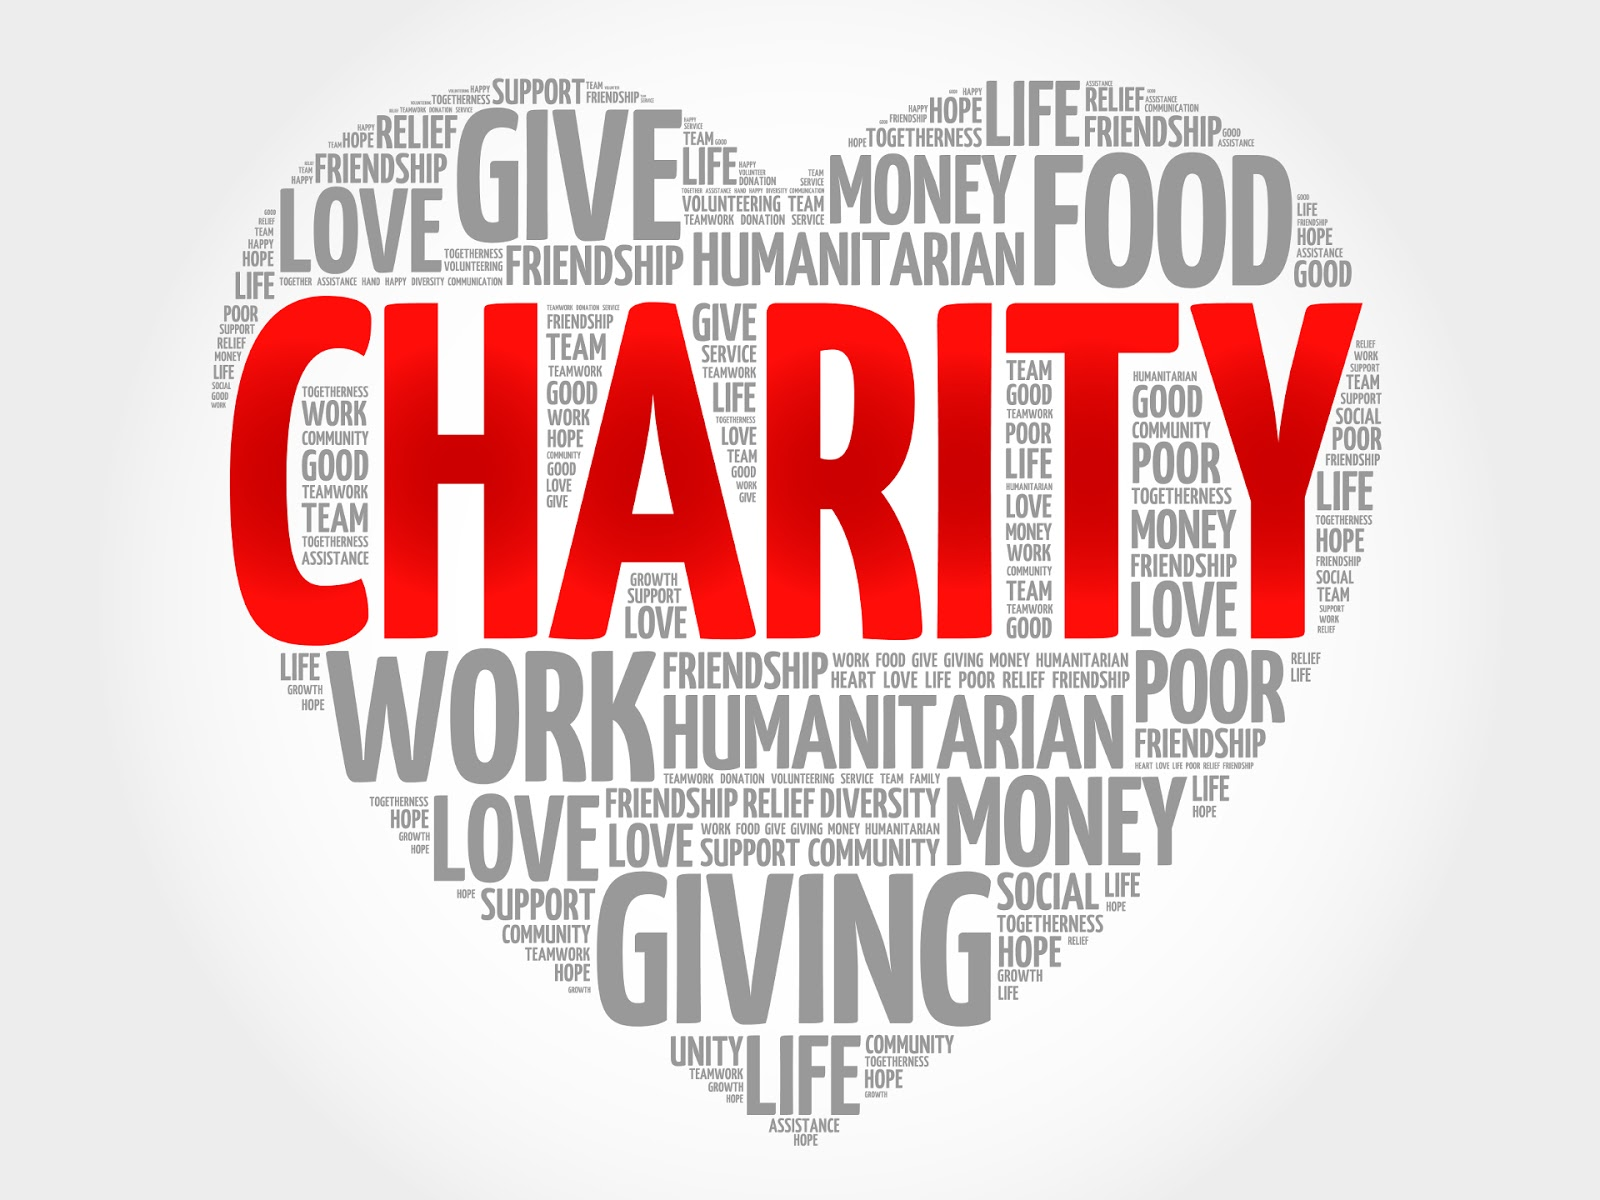 There is a lot of ways charities can improve the society on the whole, and charity lotteries are just one of those ways